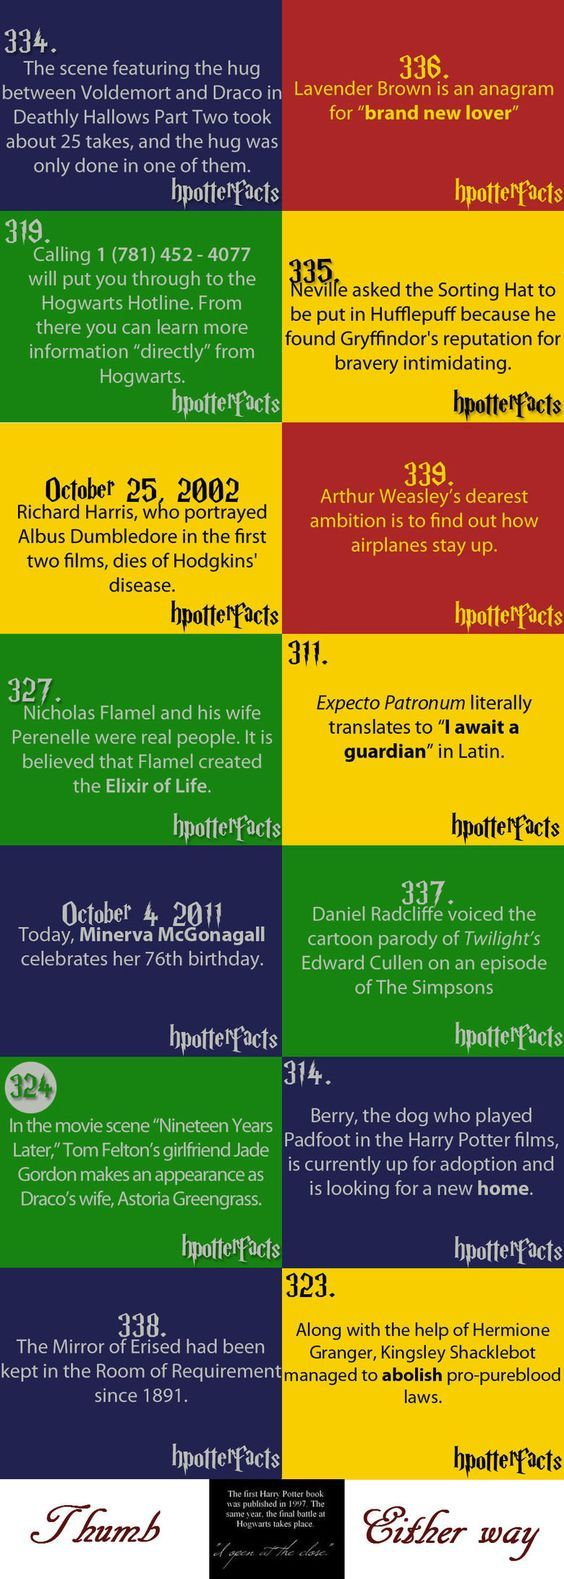 Harry Potter facts: